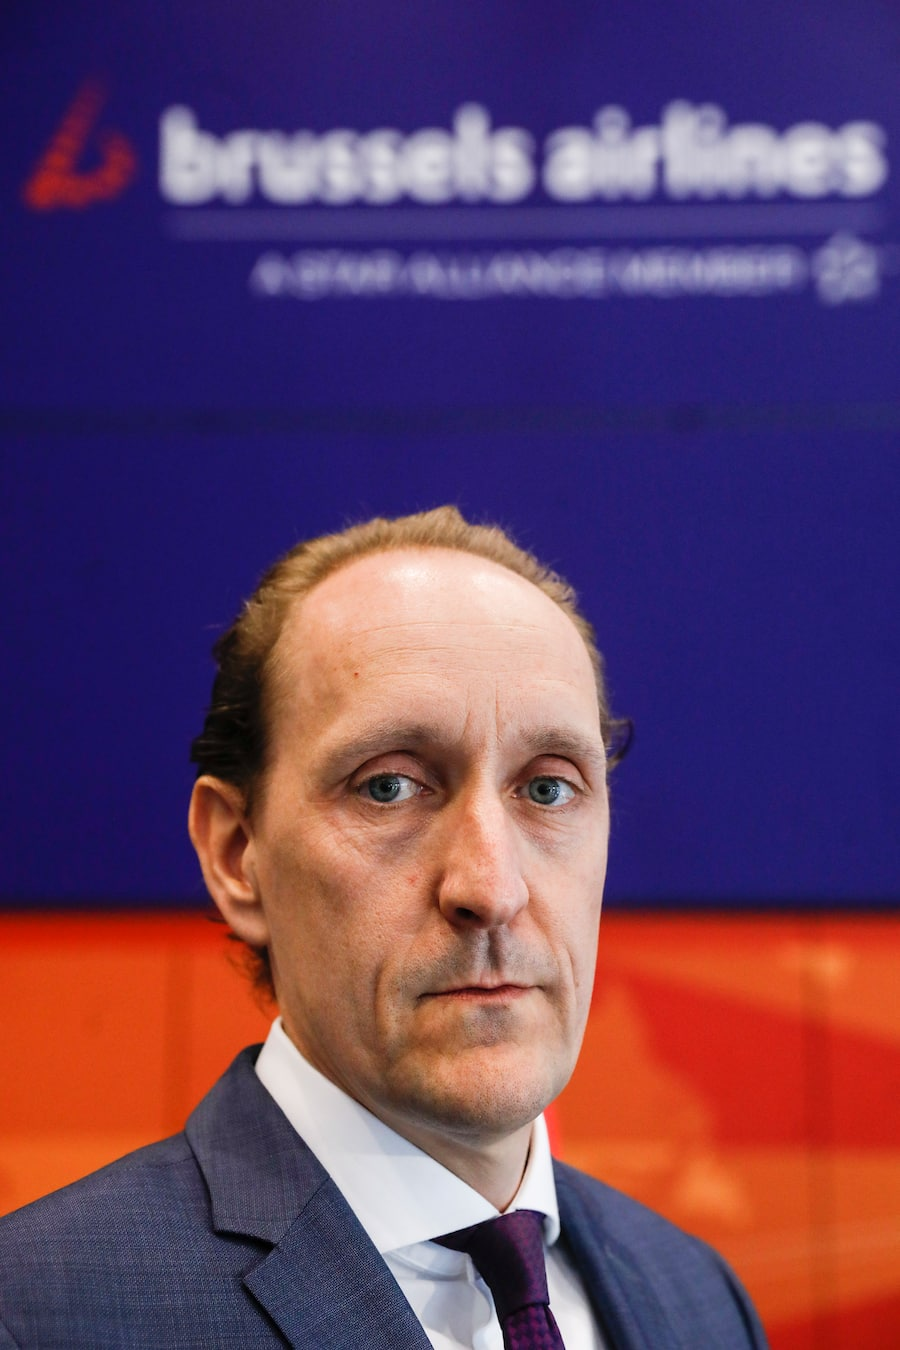 Brussels Airlines CFO Dieter Vranckx pictured after an Extraordinary Works Council of Brussels Airlines, Tuesday 12 May 2020 in Zaventem. Brussels Airlines flights are suspended till June 1st in the ongoing corona virus crisis. Staff applied for temporary unemployment. BELGA PHOTO THIERRY ROGE